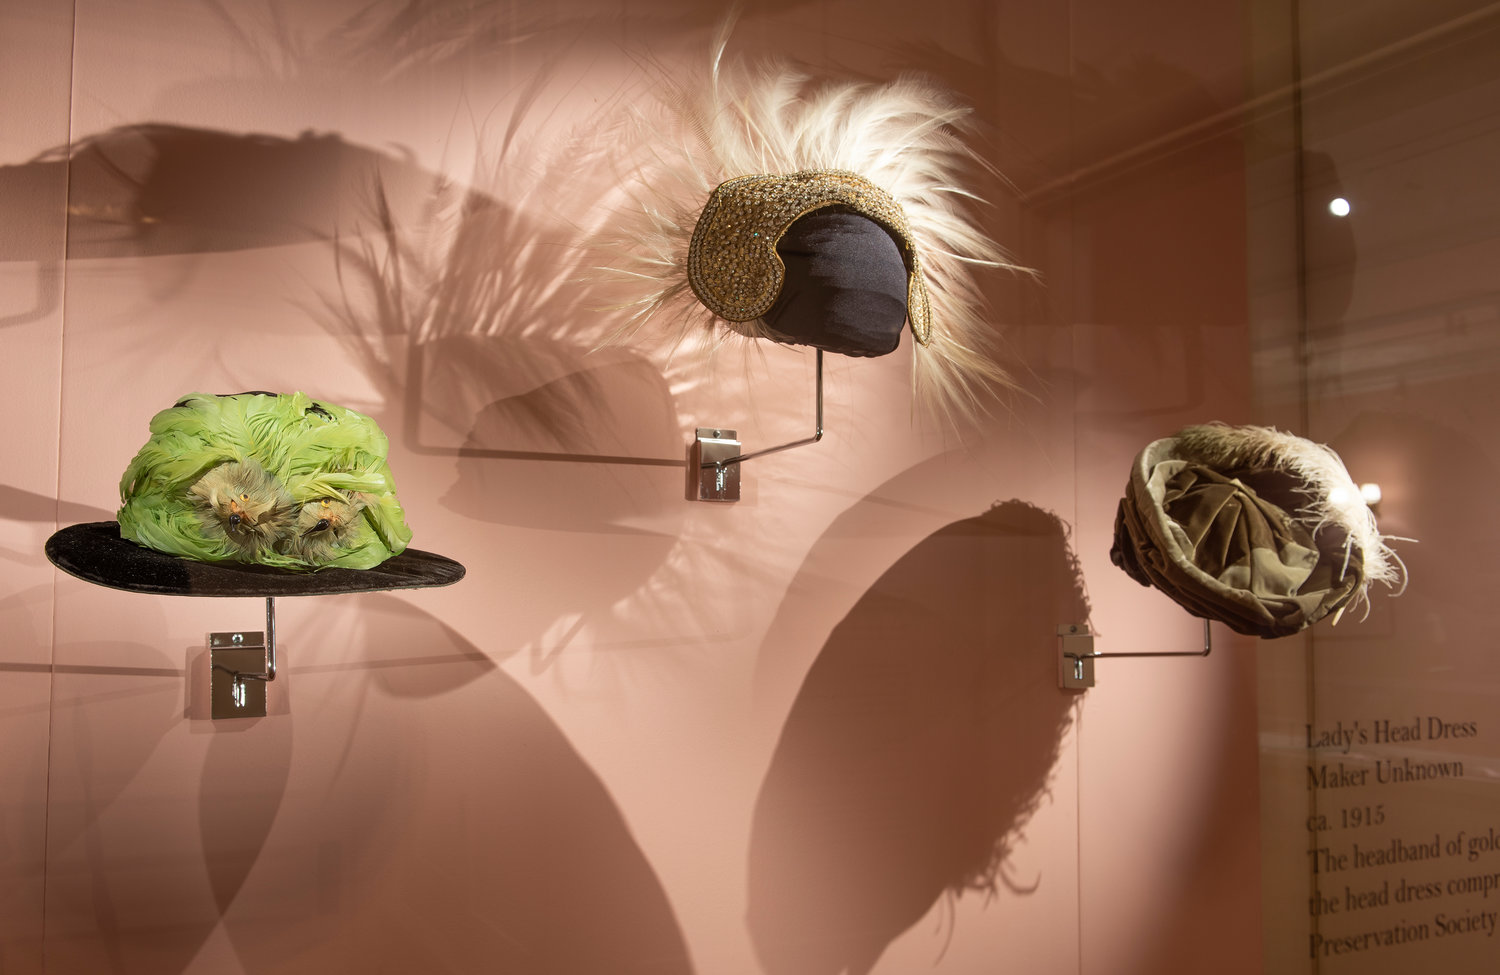 'John James Audubon: Obsession Untamed' includes several ladies hats illustrating the early-20th-century craze for feathers that, along with Audubon's images, lead to initial conservation efforts.